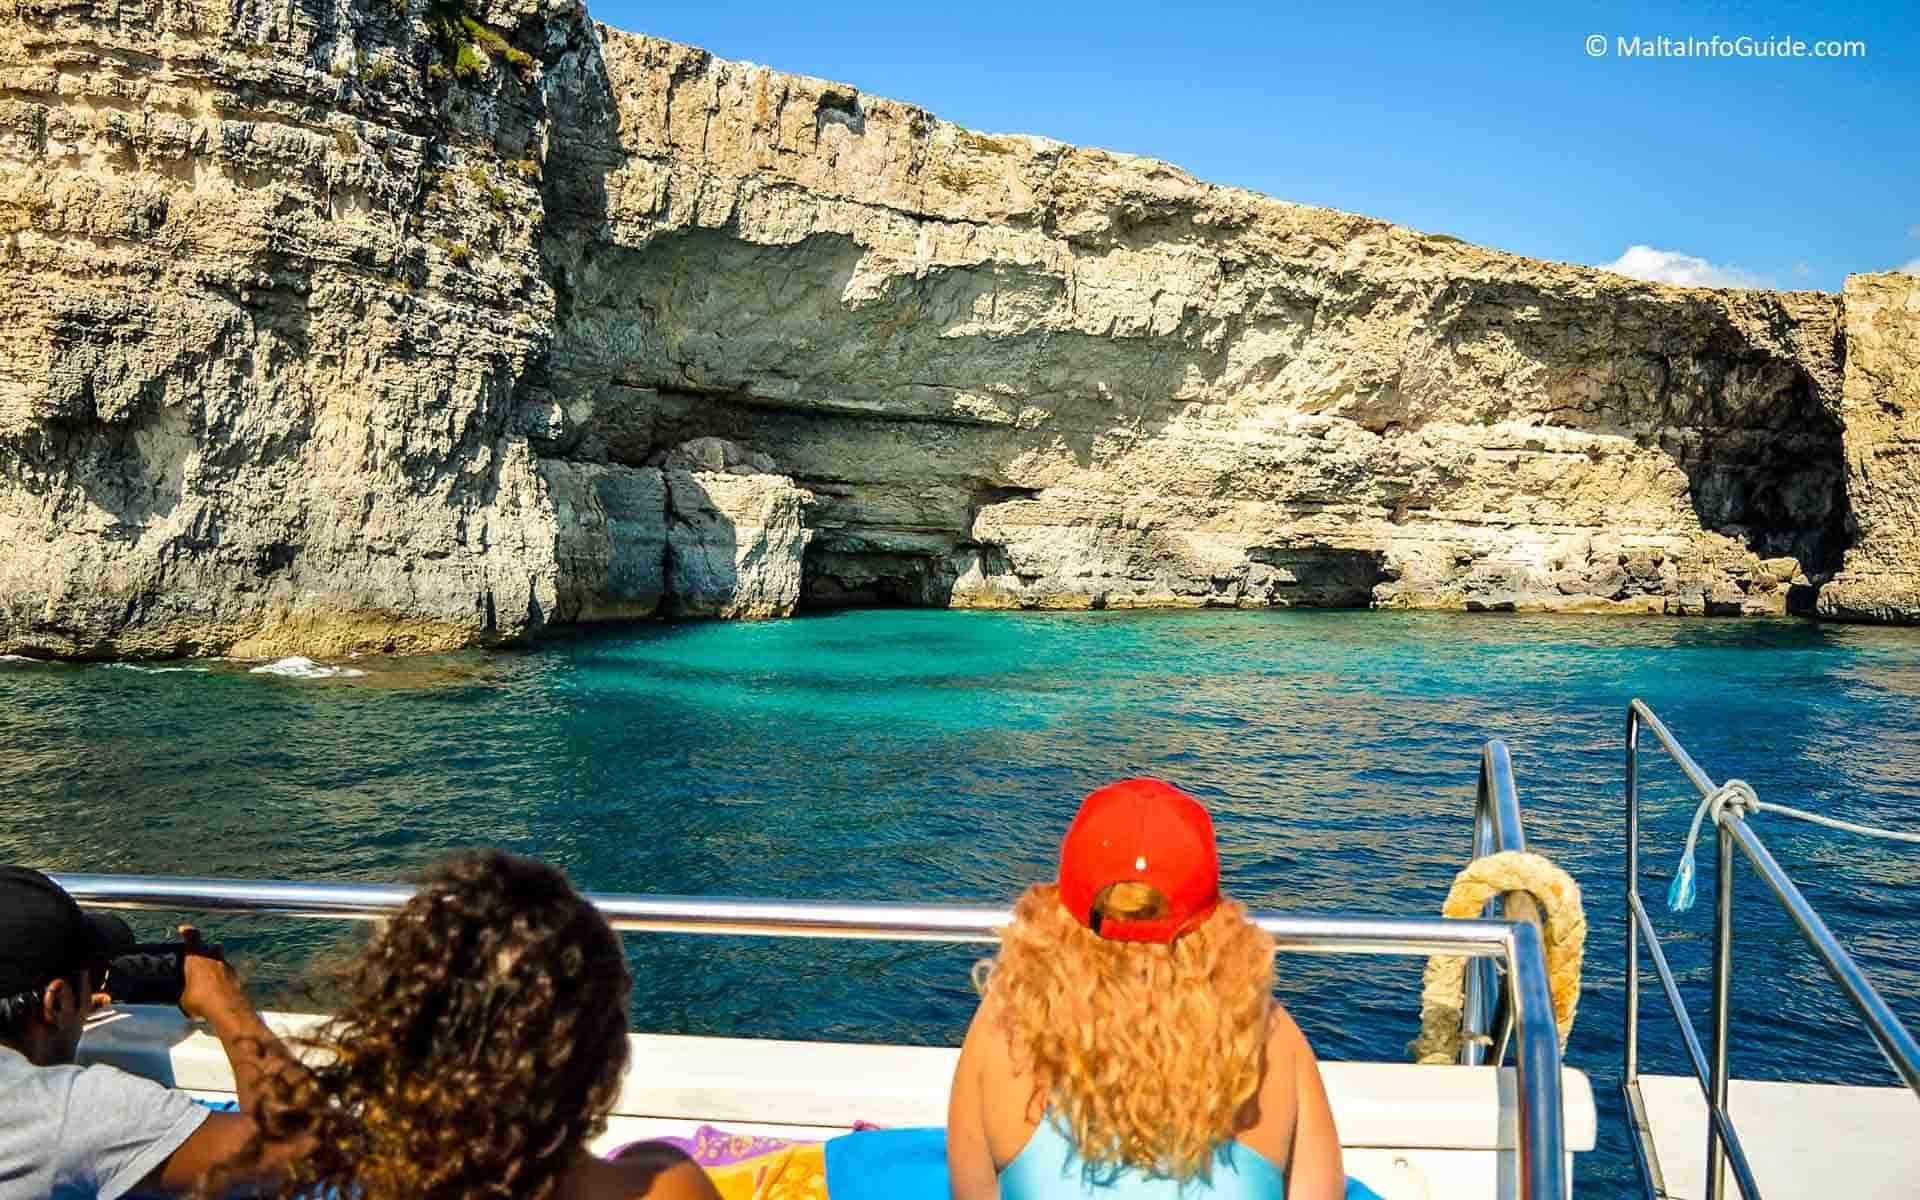 Catamaran approaching Count of Monte Cristo Cave in Malta